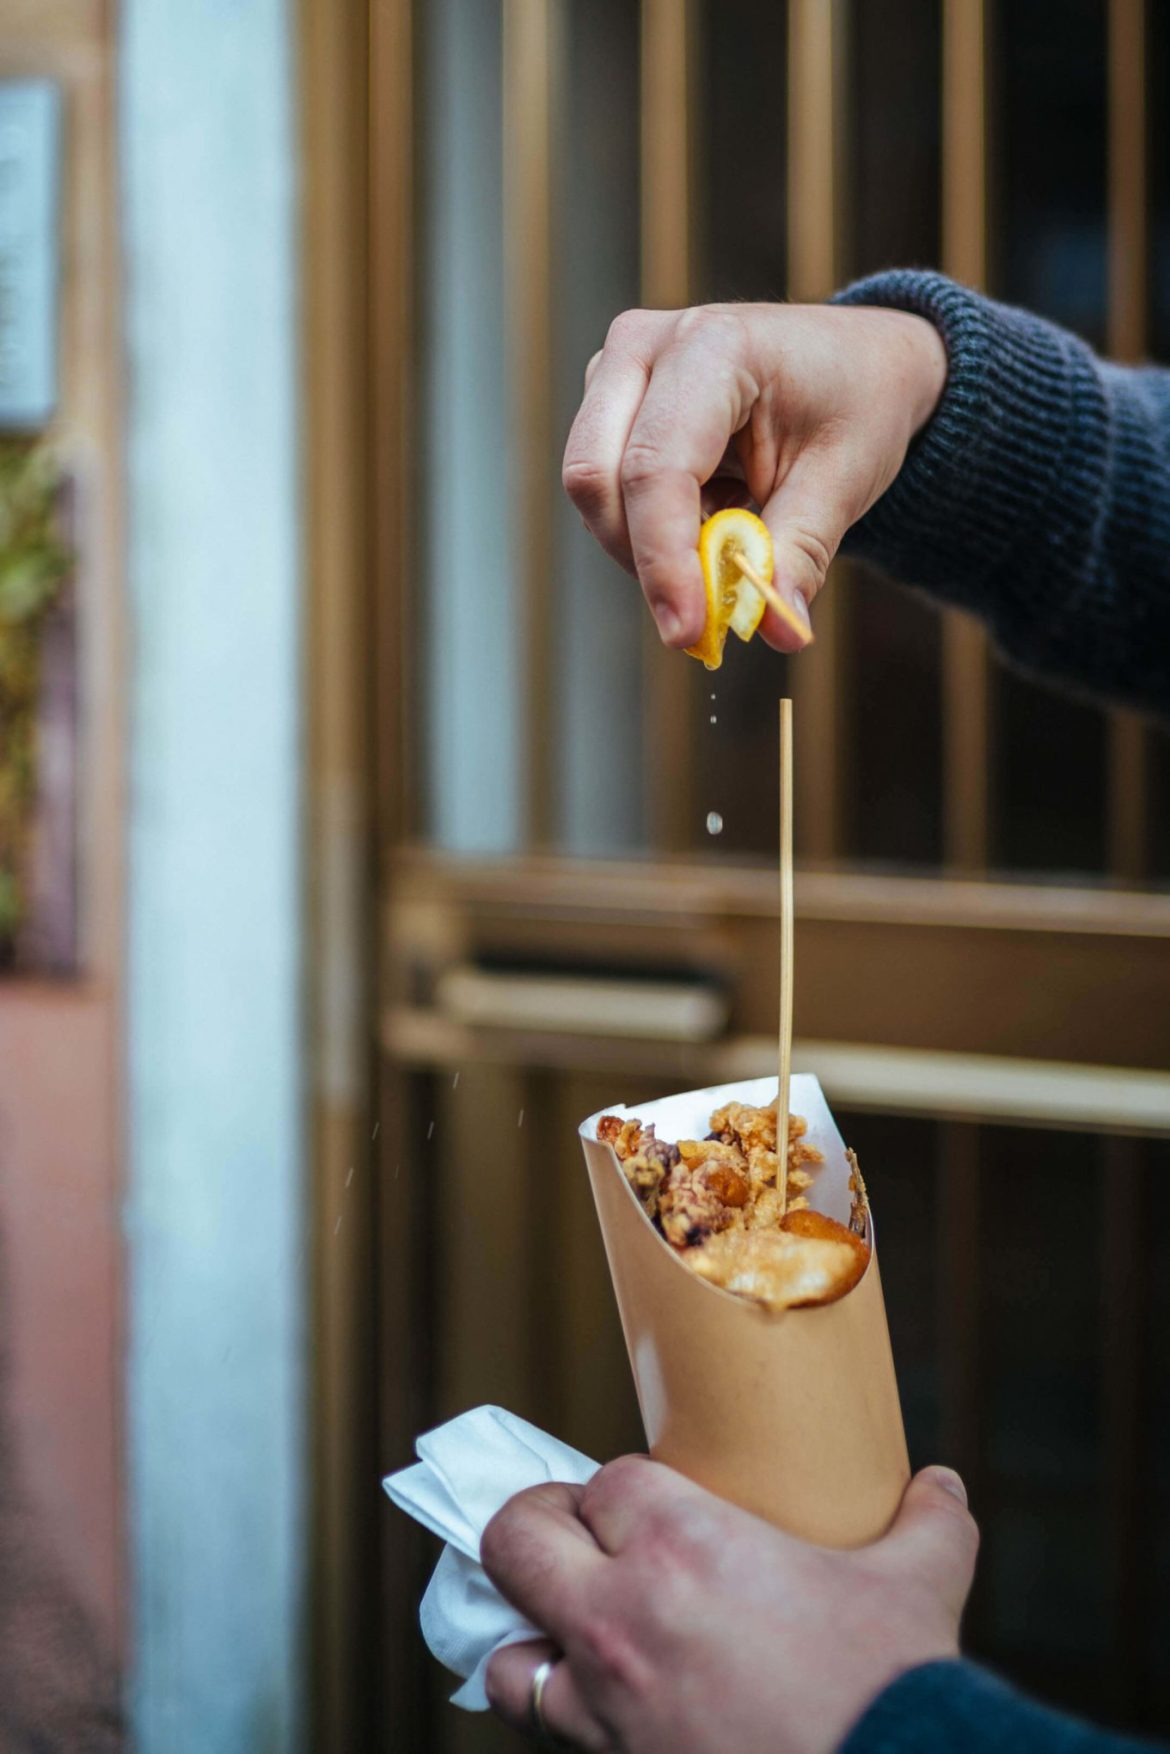 Know where to get the best restaurant with street food in Cinque Terre. Get tips from The Taste Edit for your next visit.